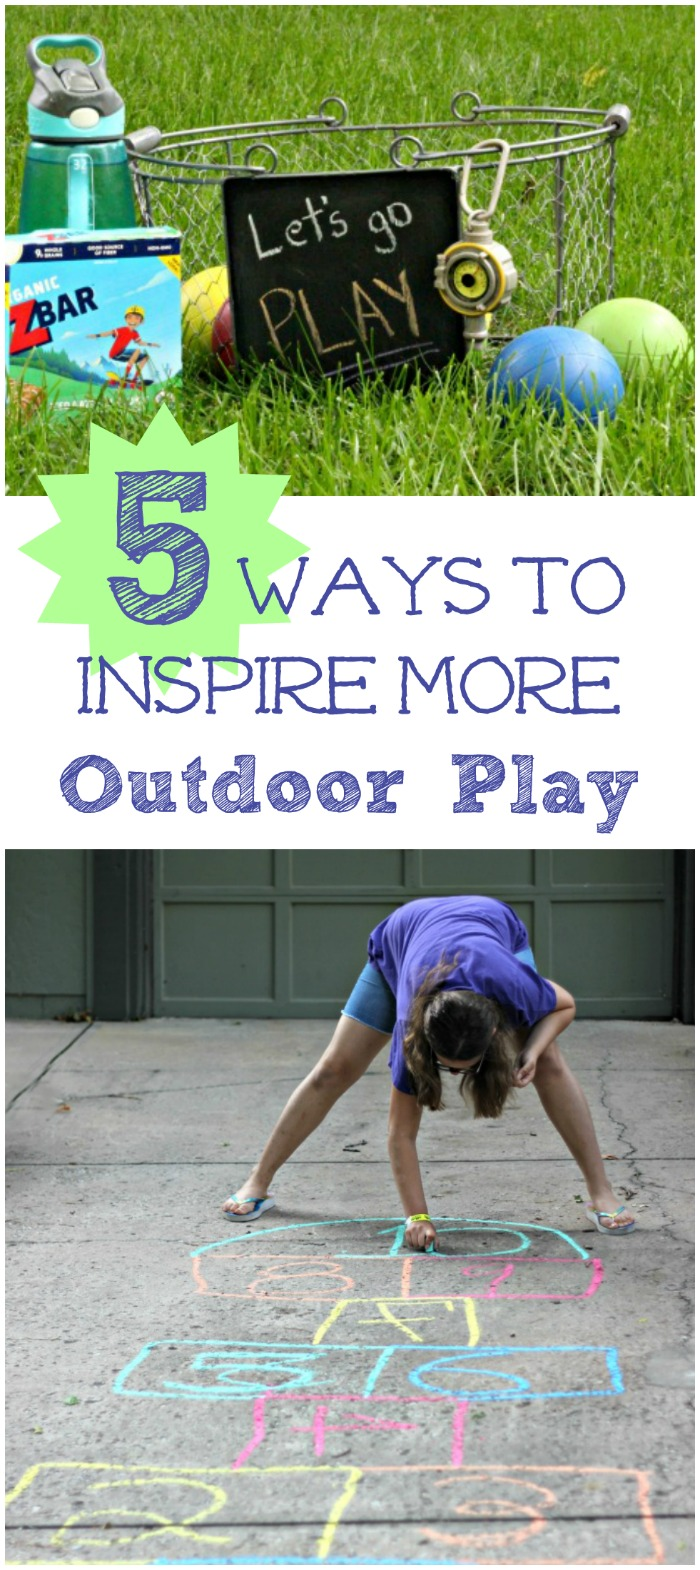 Ideas for getting Kids Outside to Play more!